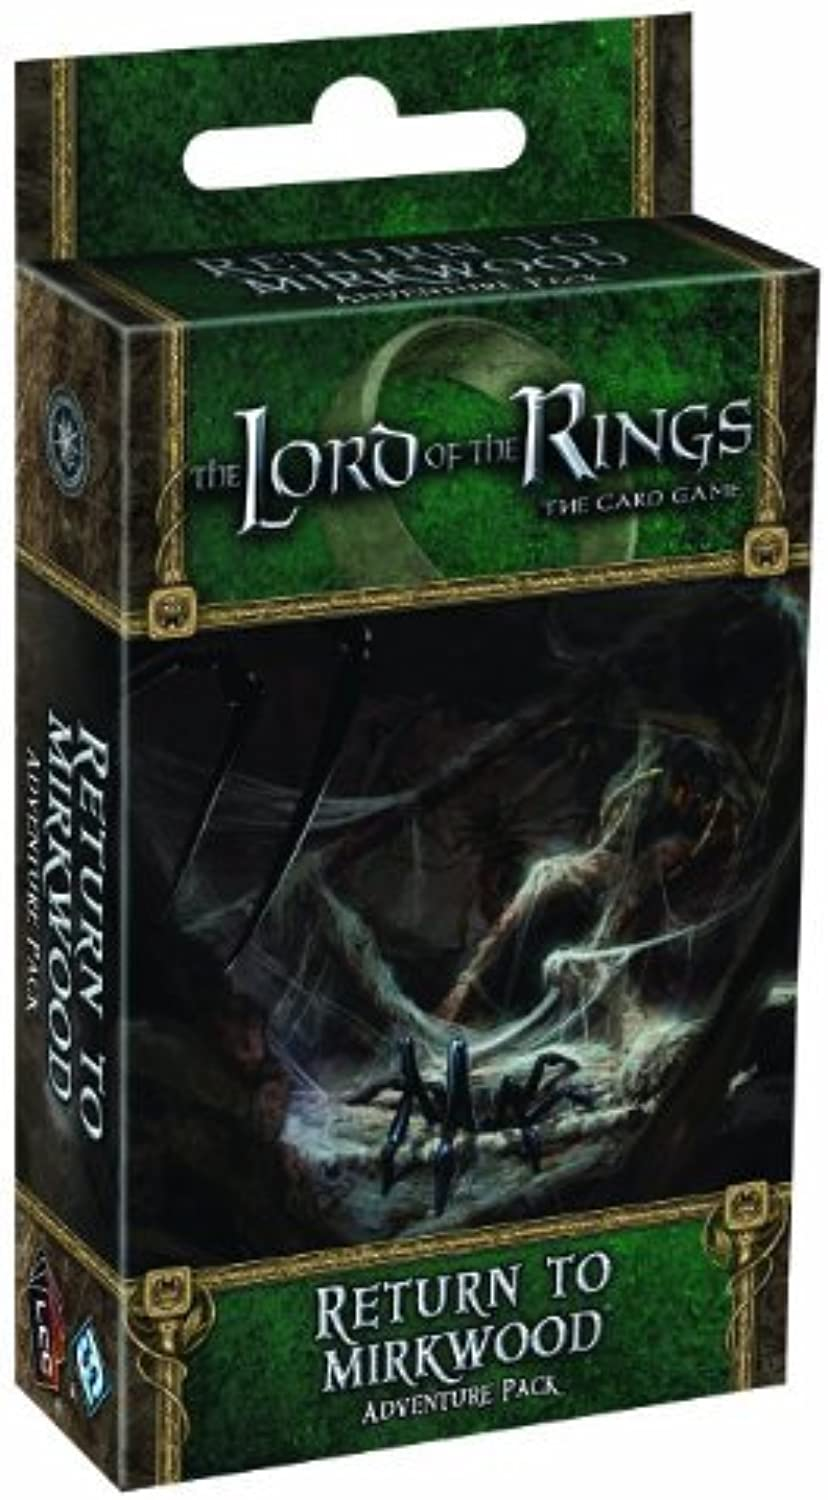 The Lord of the Rings  The Card Game Return to Mirkwood Adventure Pack (October 15,2011)